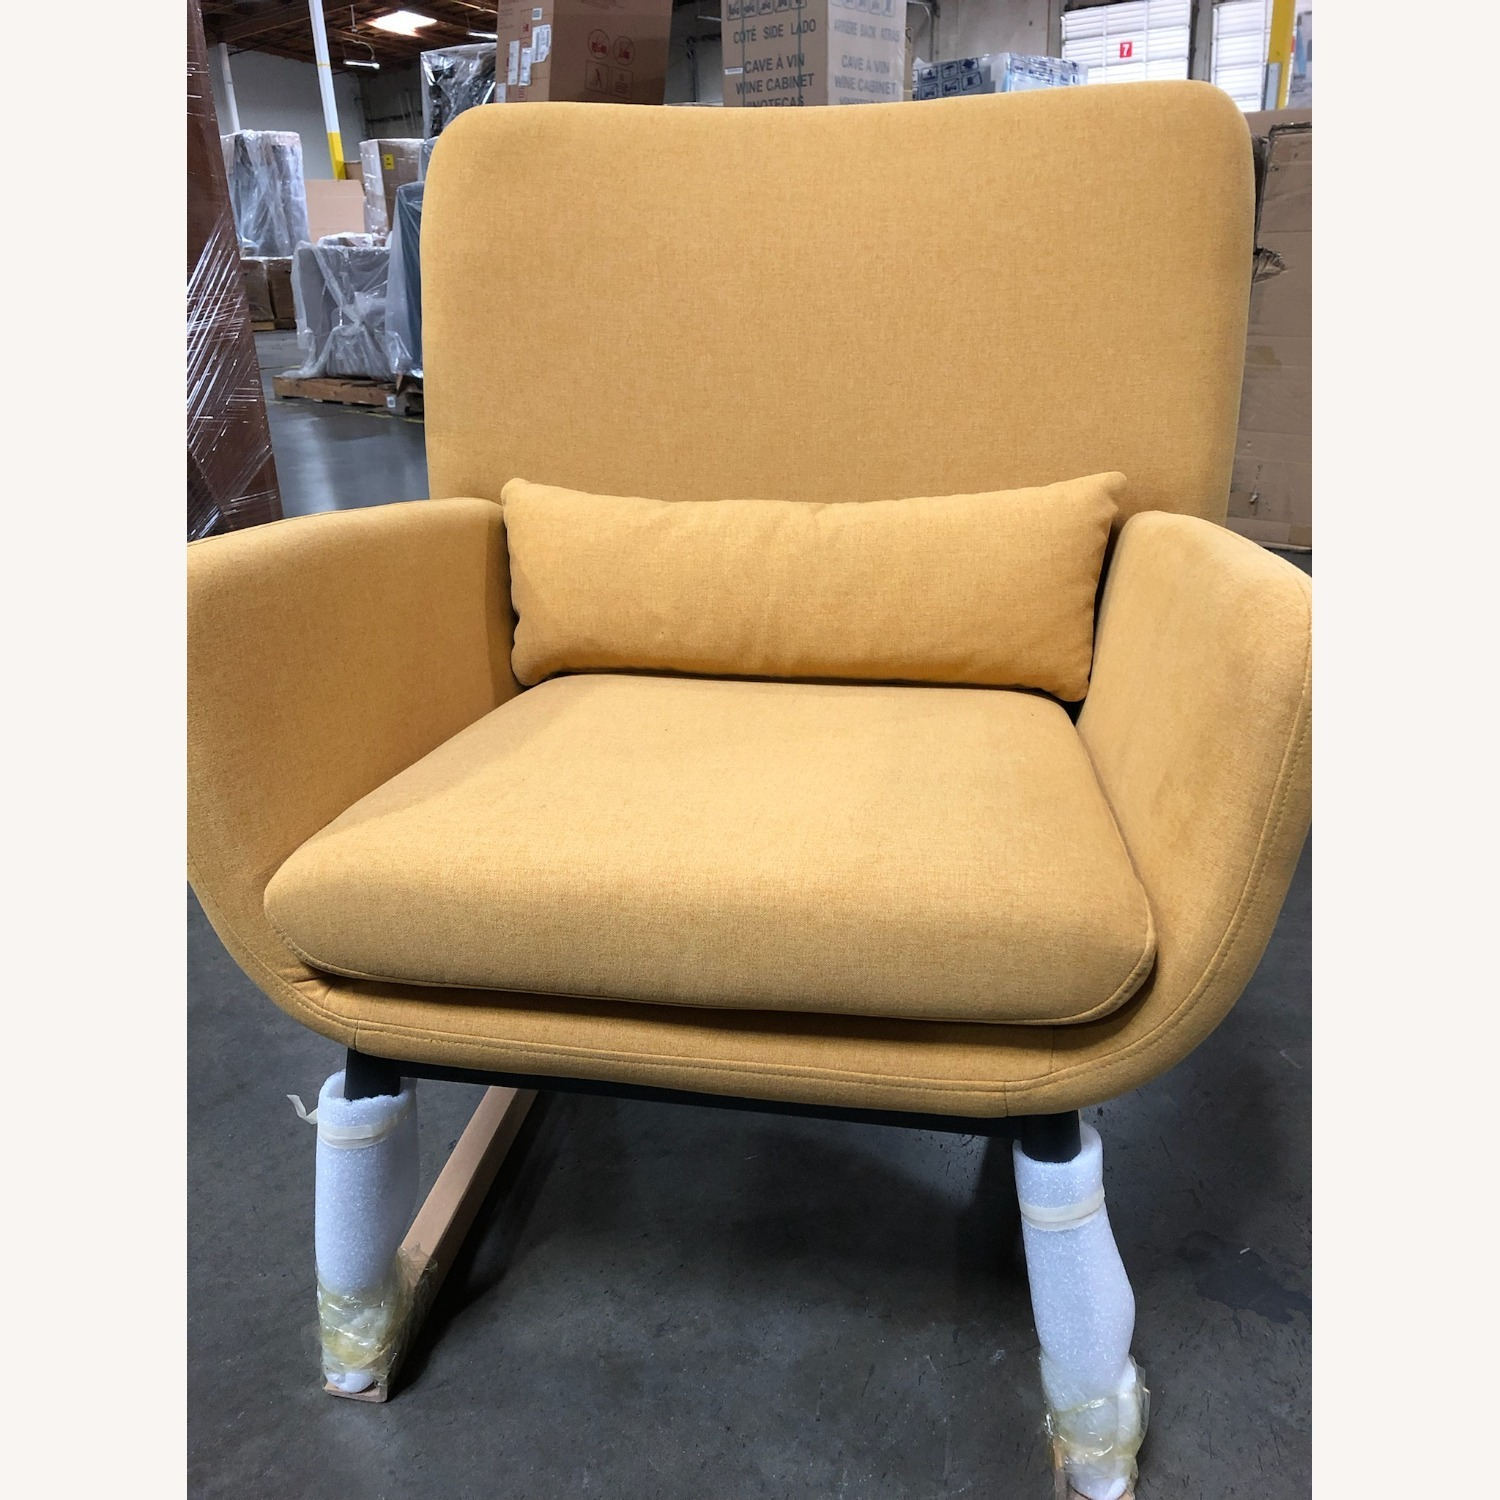 Castlery Cammy Armchair, Canary Yellow - image-1